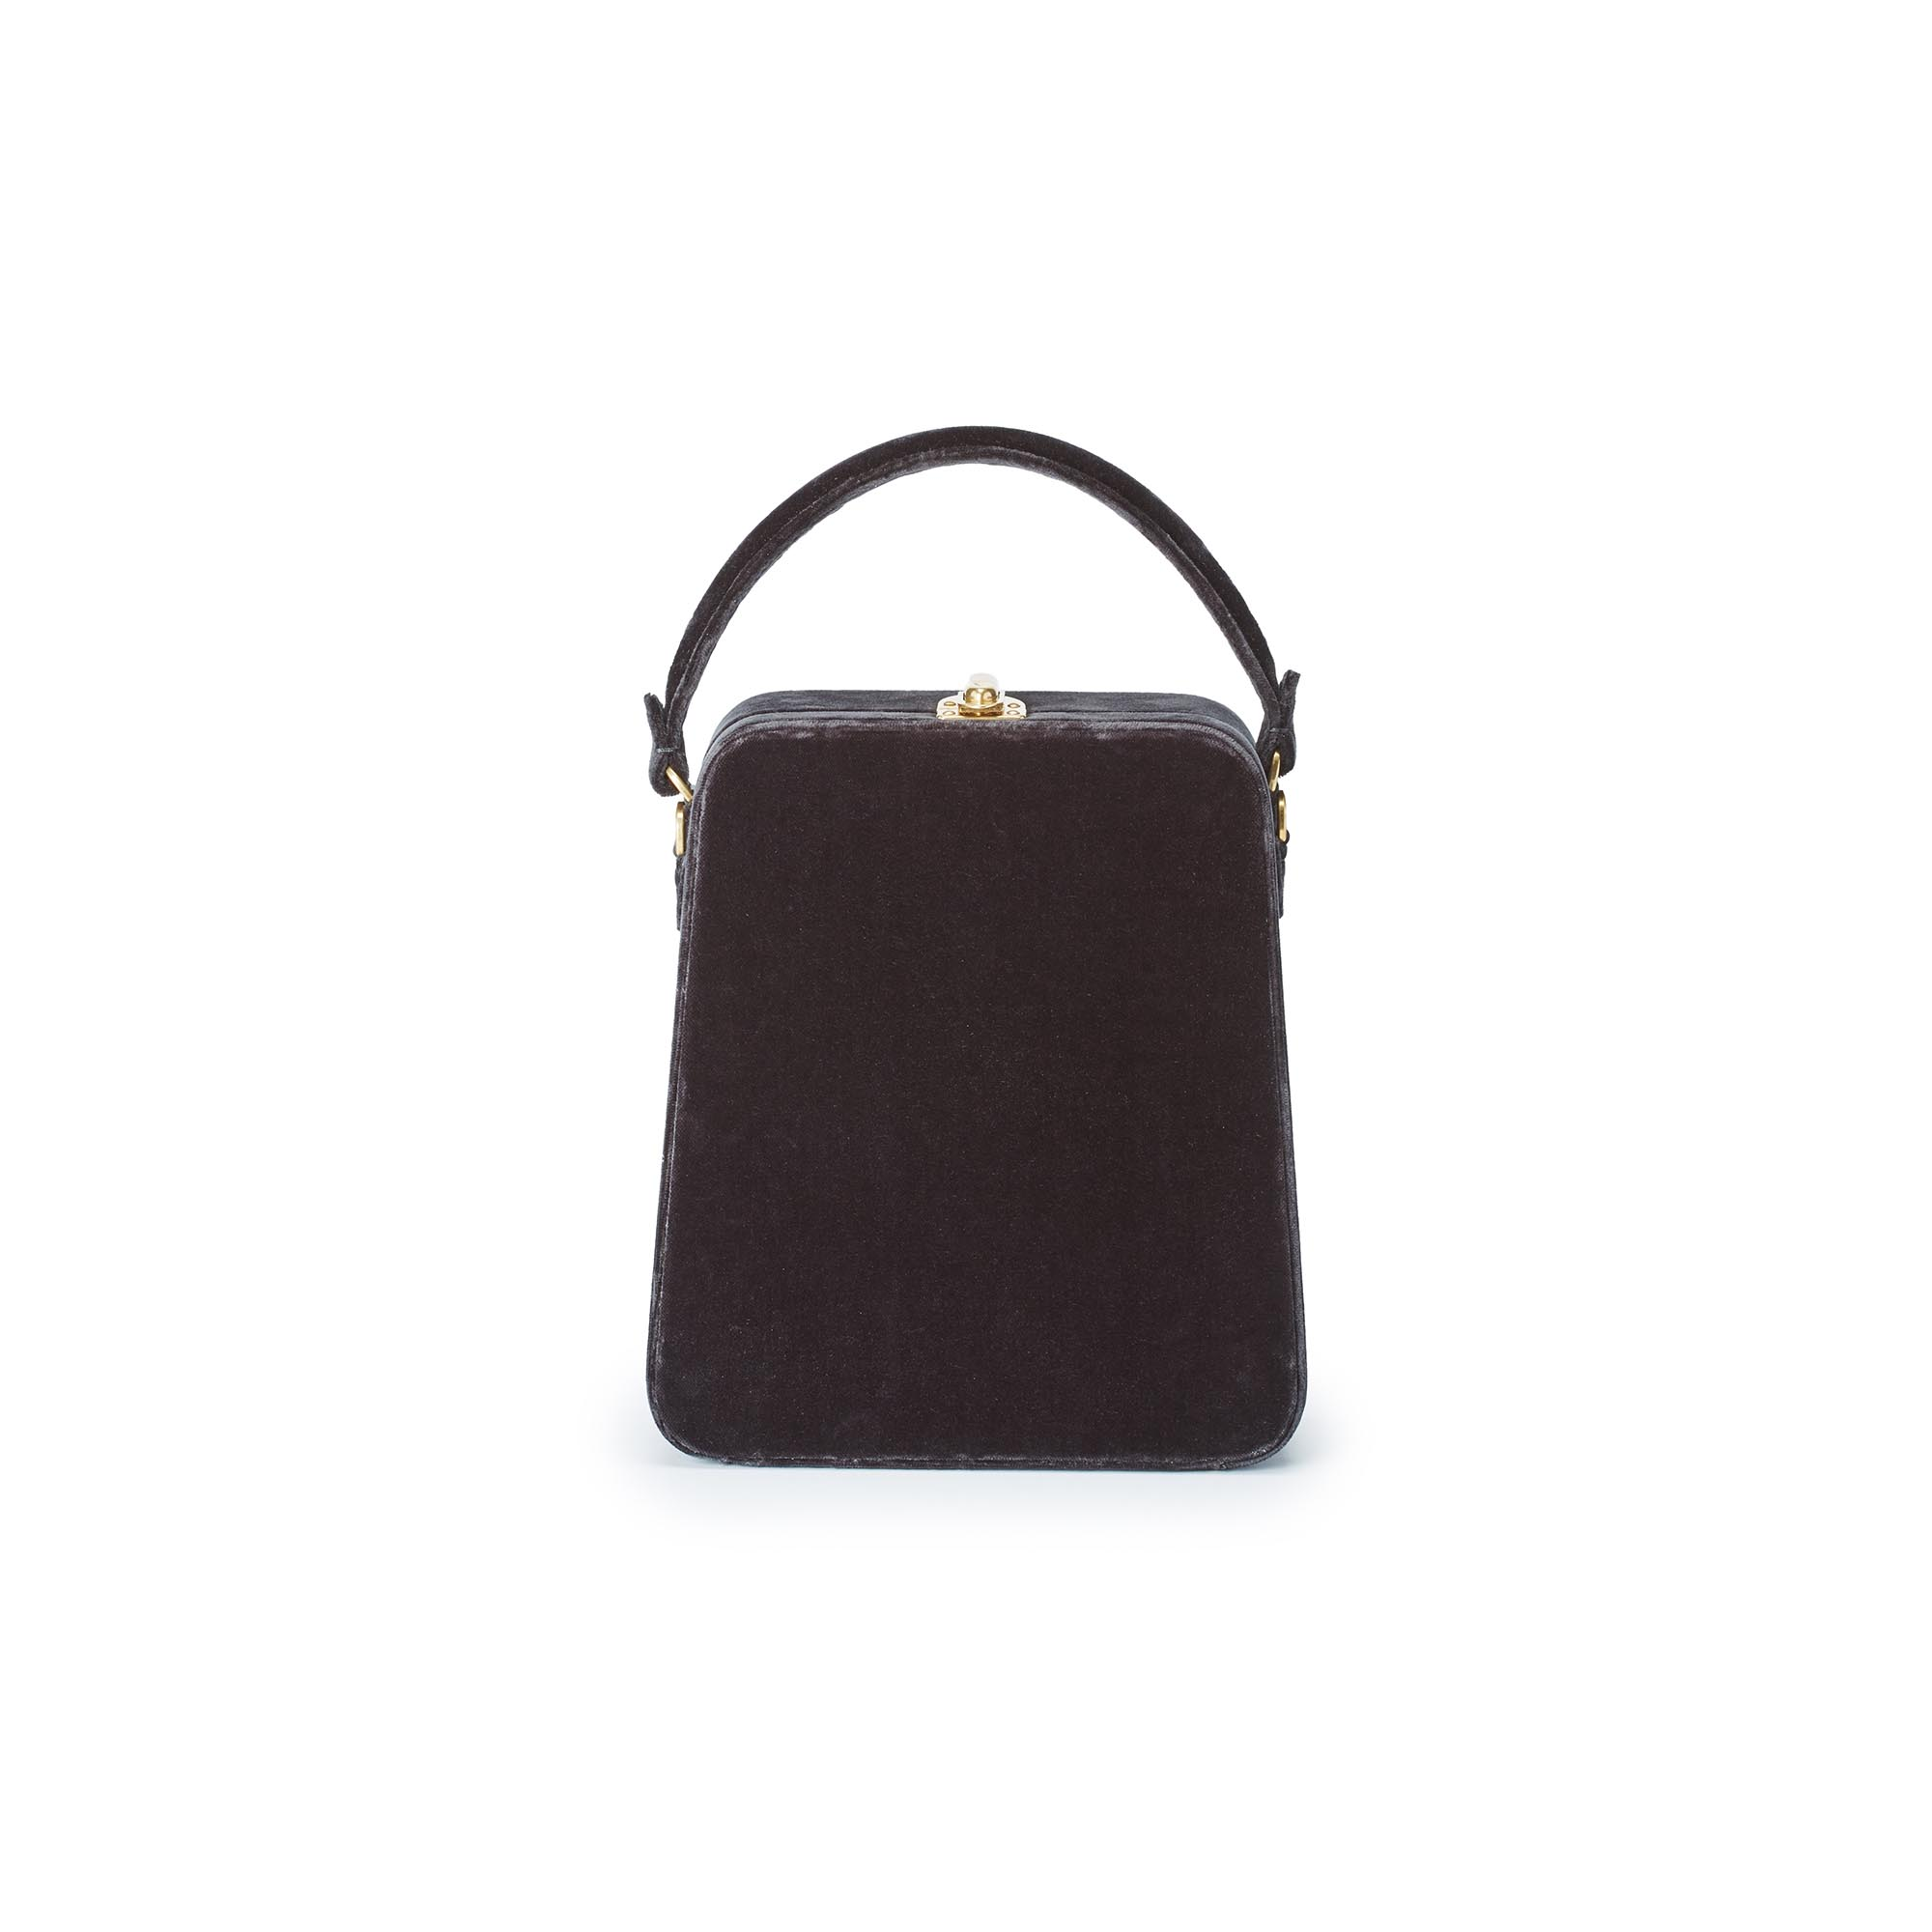 Tall-Bertoncina-charcoal-gray-velvet-bag-Bertoni-1949_01